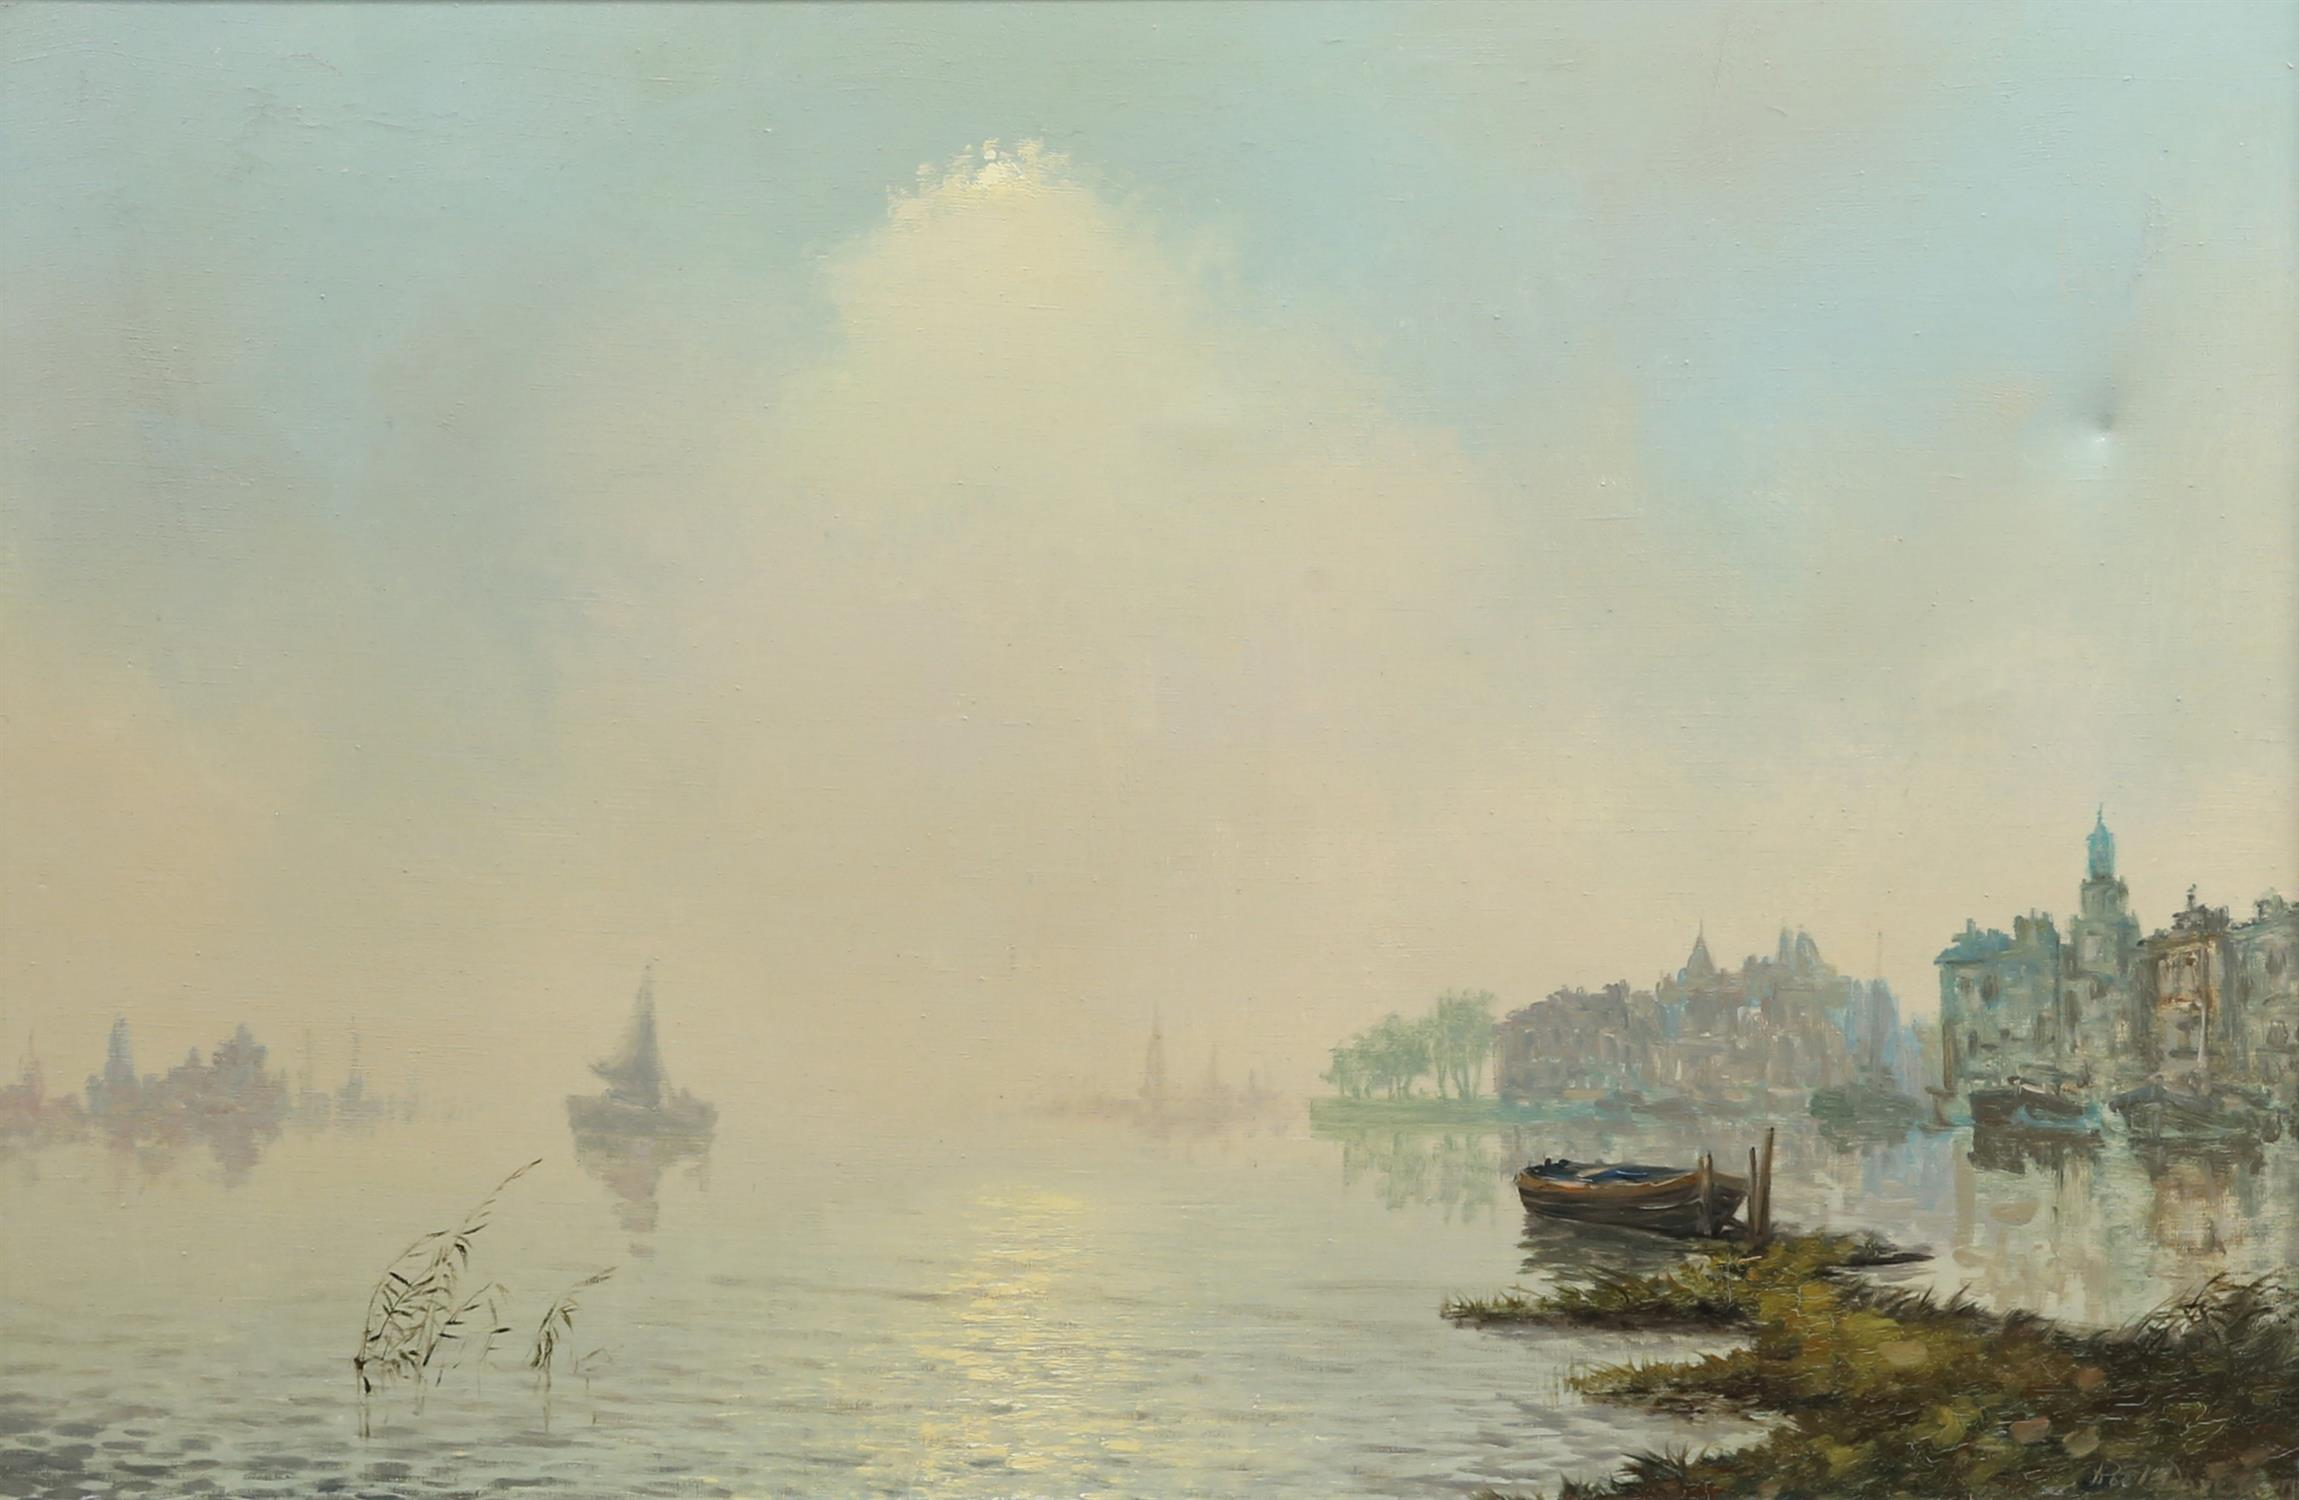 Roel Dozeman (1924-1988). Continental Harbour Scene. Oil on canvas. Signed lower right. 76 x 103cm.